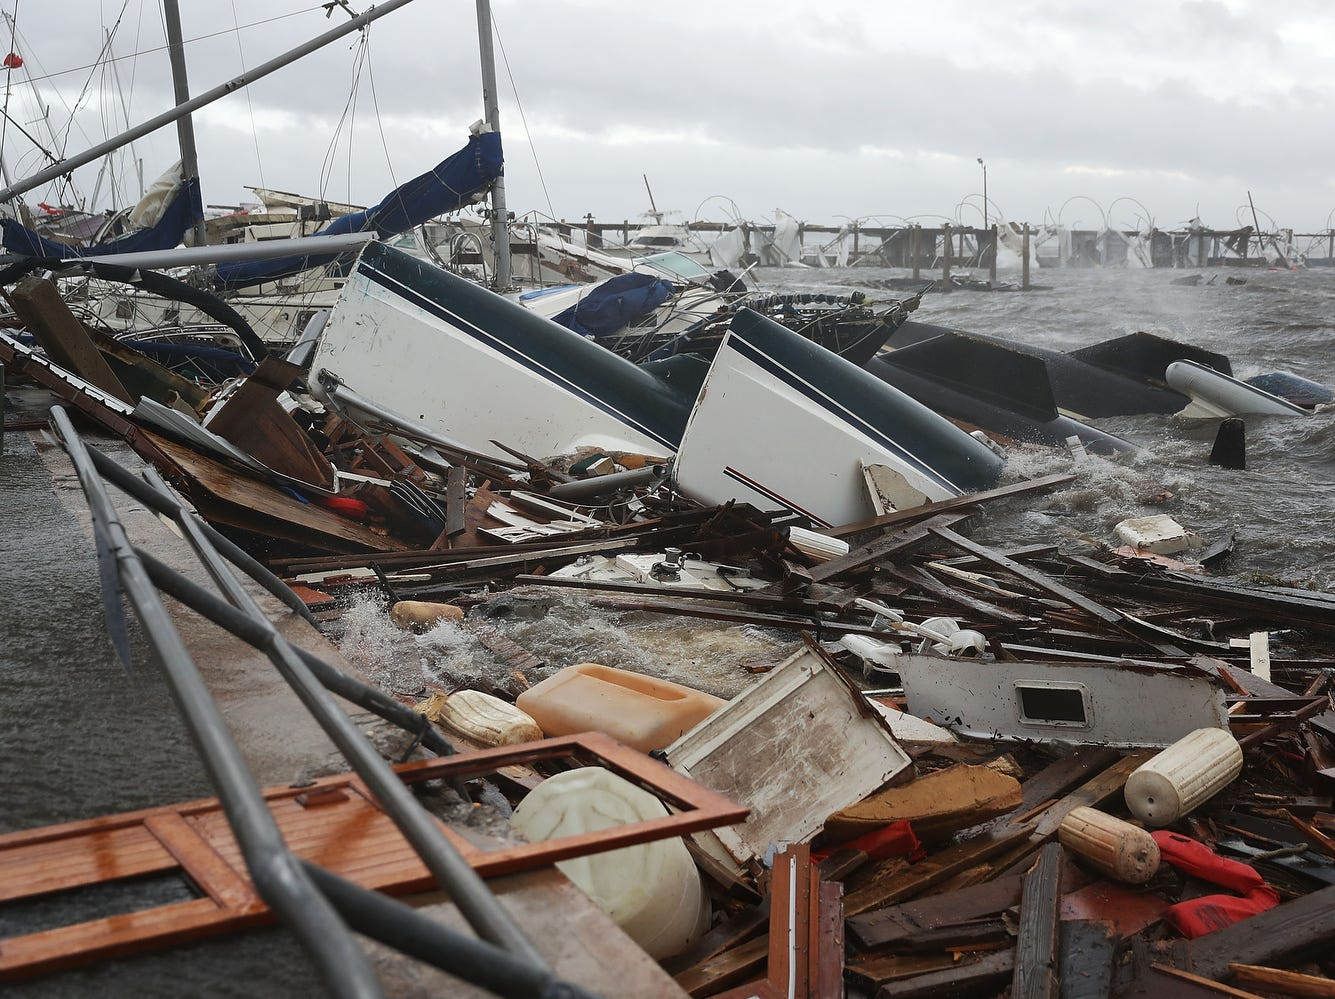 Boats that were docked are seen in a pile of rubble after hurricane Michael passed through the downtown area in Panama City, Wednesday.